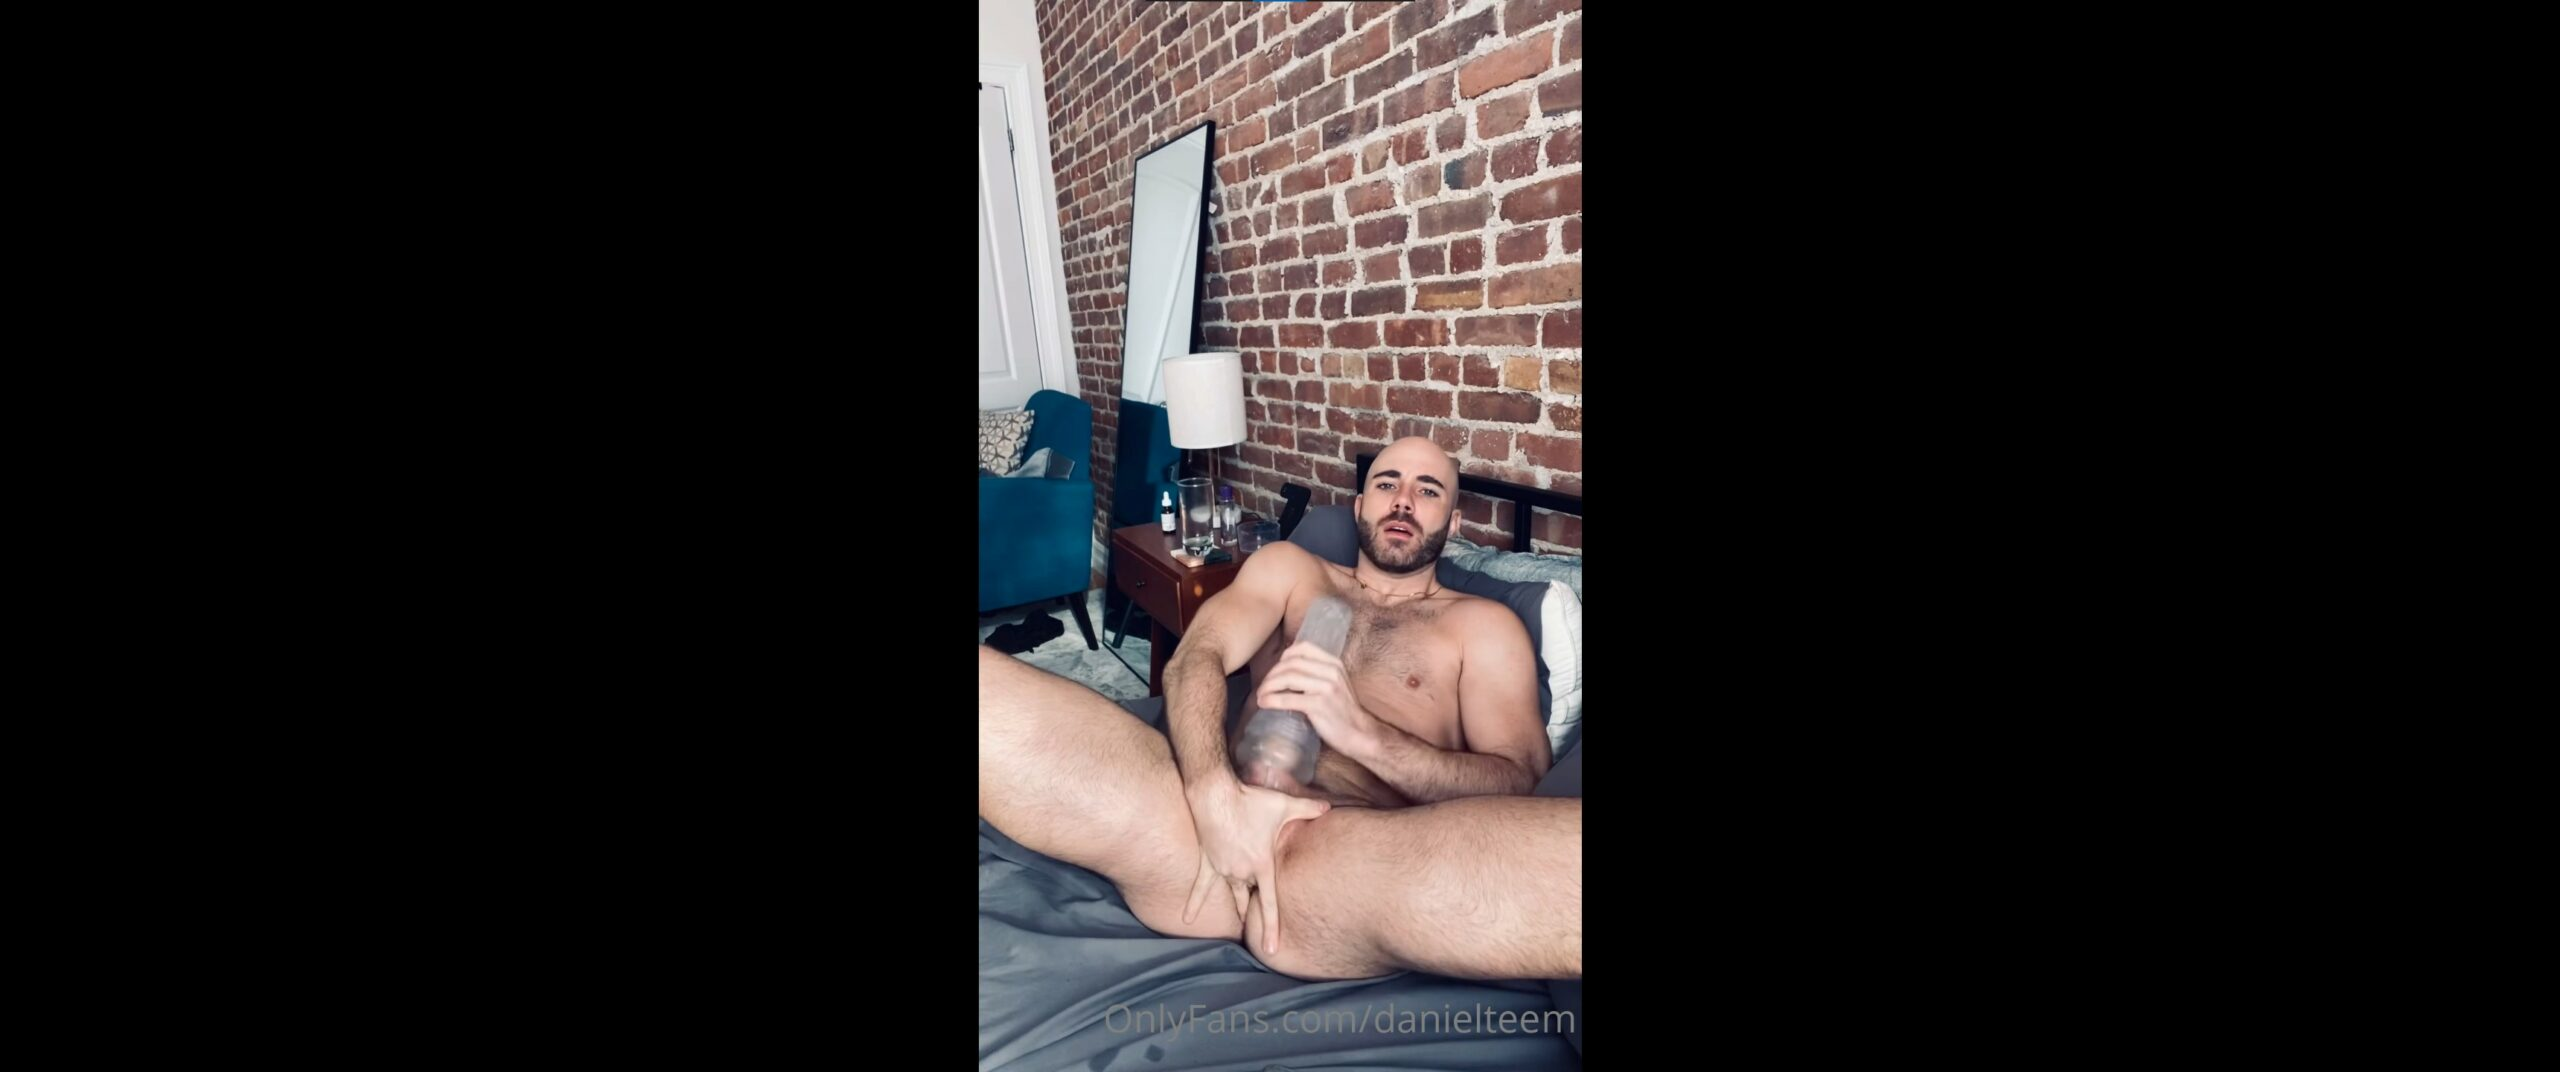 Fucking my Fleshlight while playing with my ass and shooting a load over myself - Danielteem